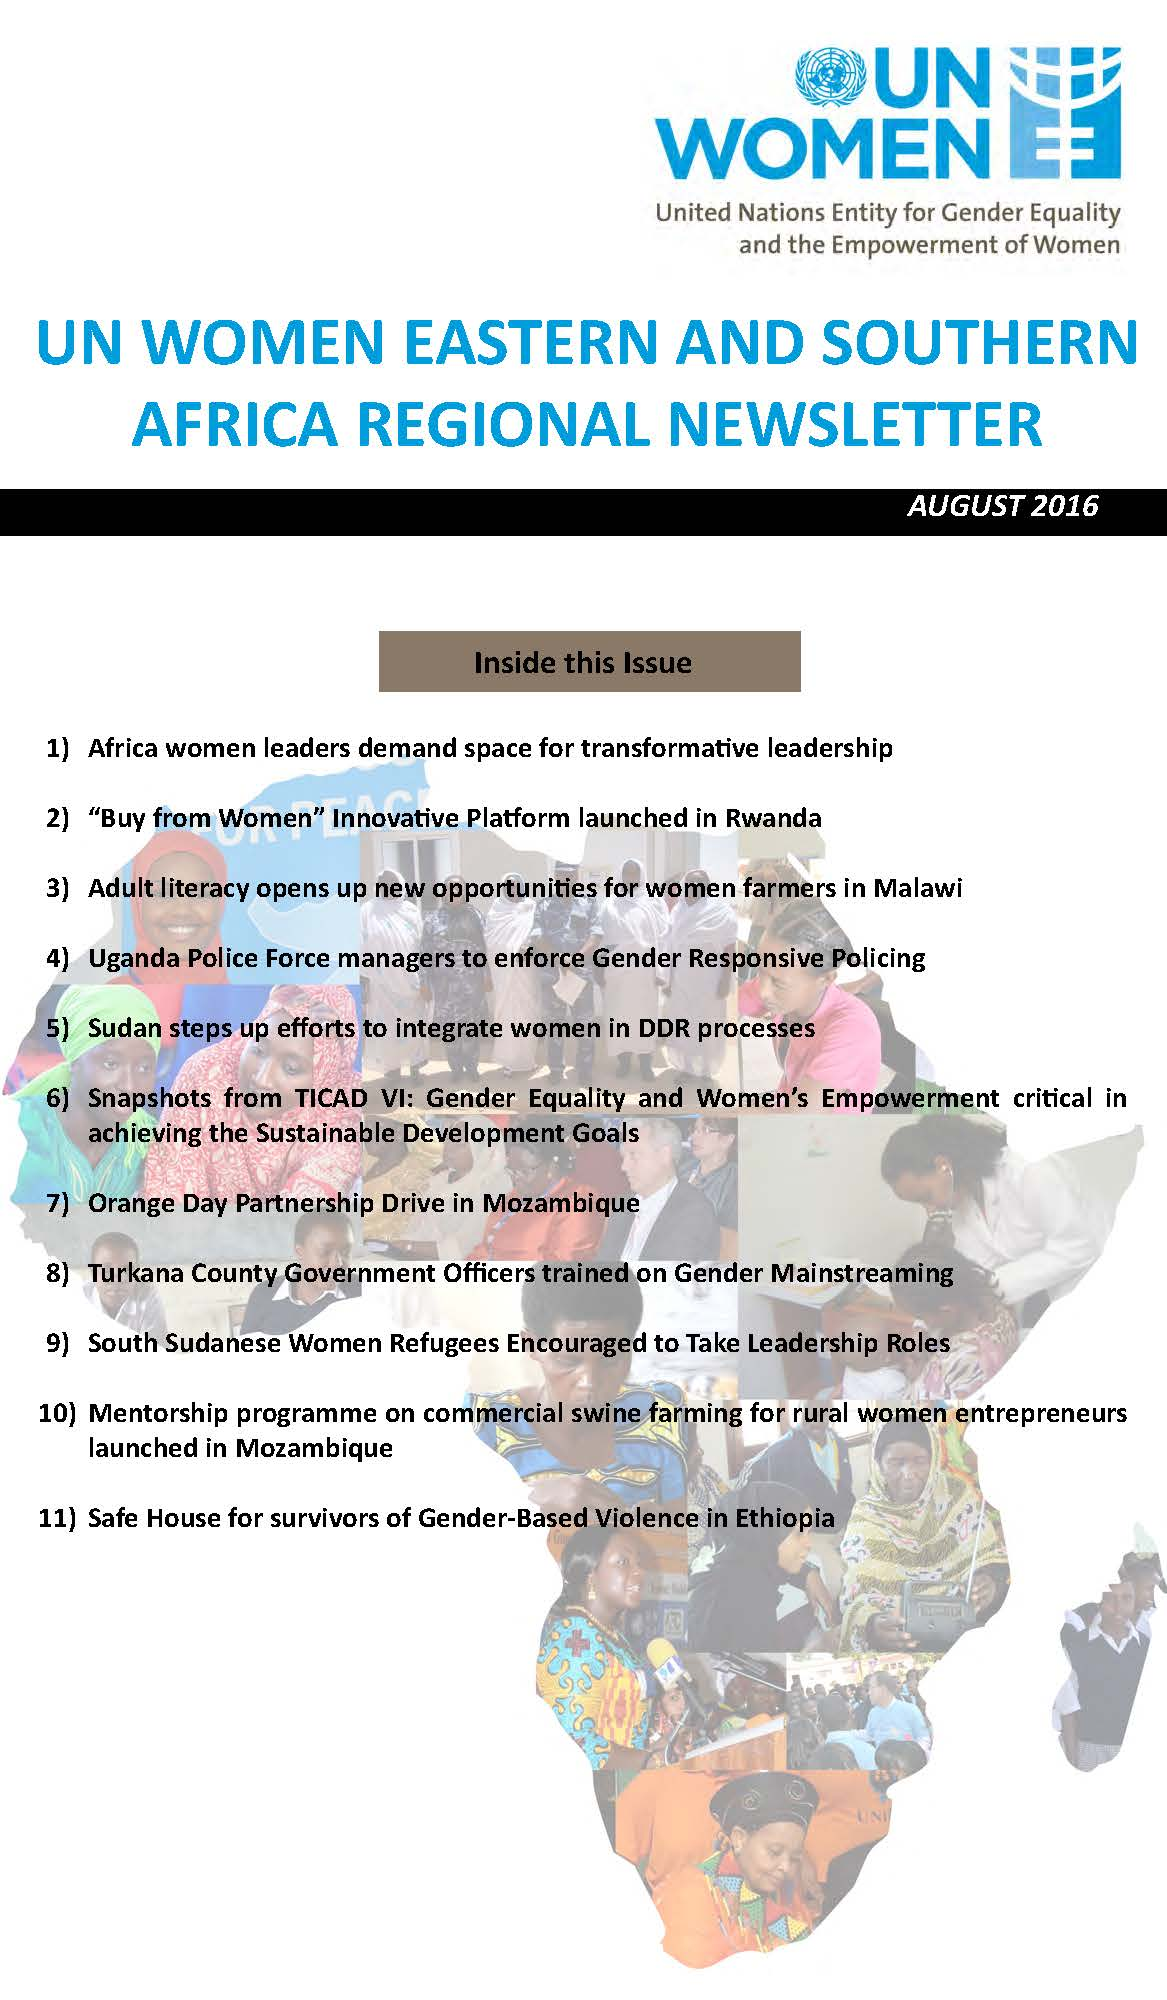 UN Women Eastern and Southern Africa Regional Newsletter of August 2016